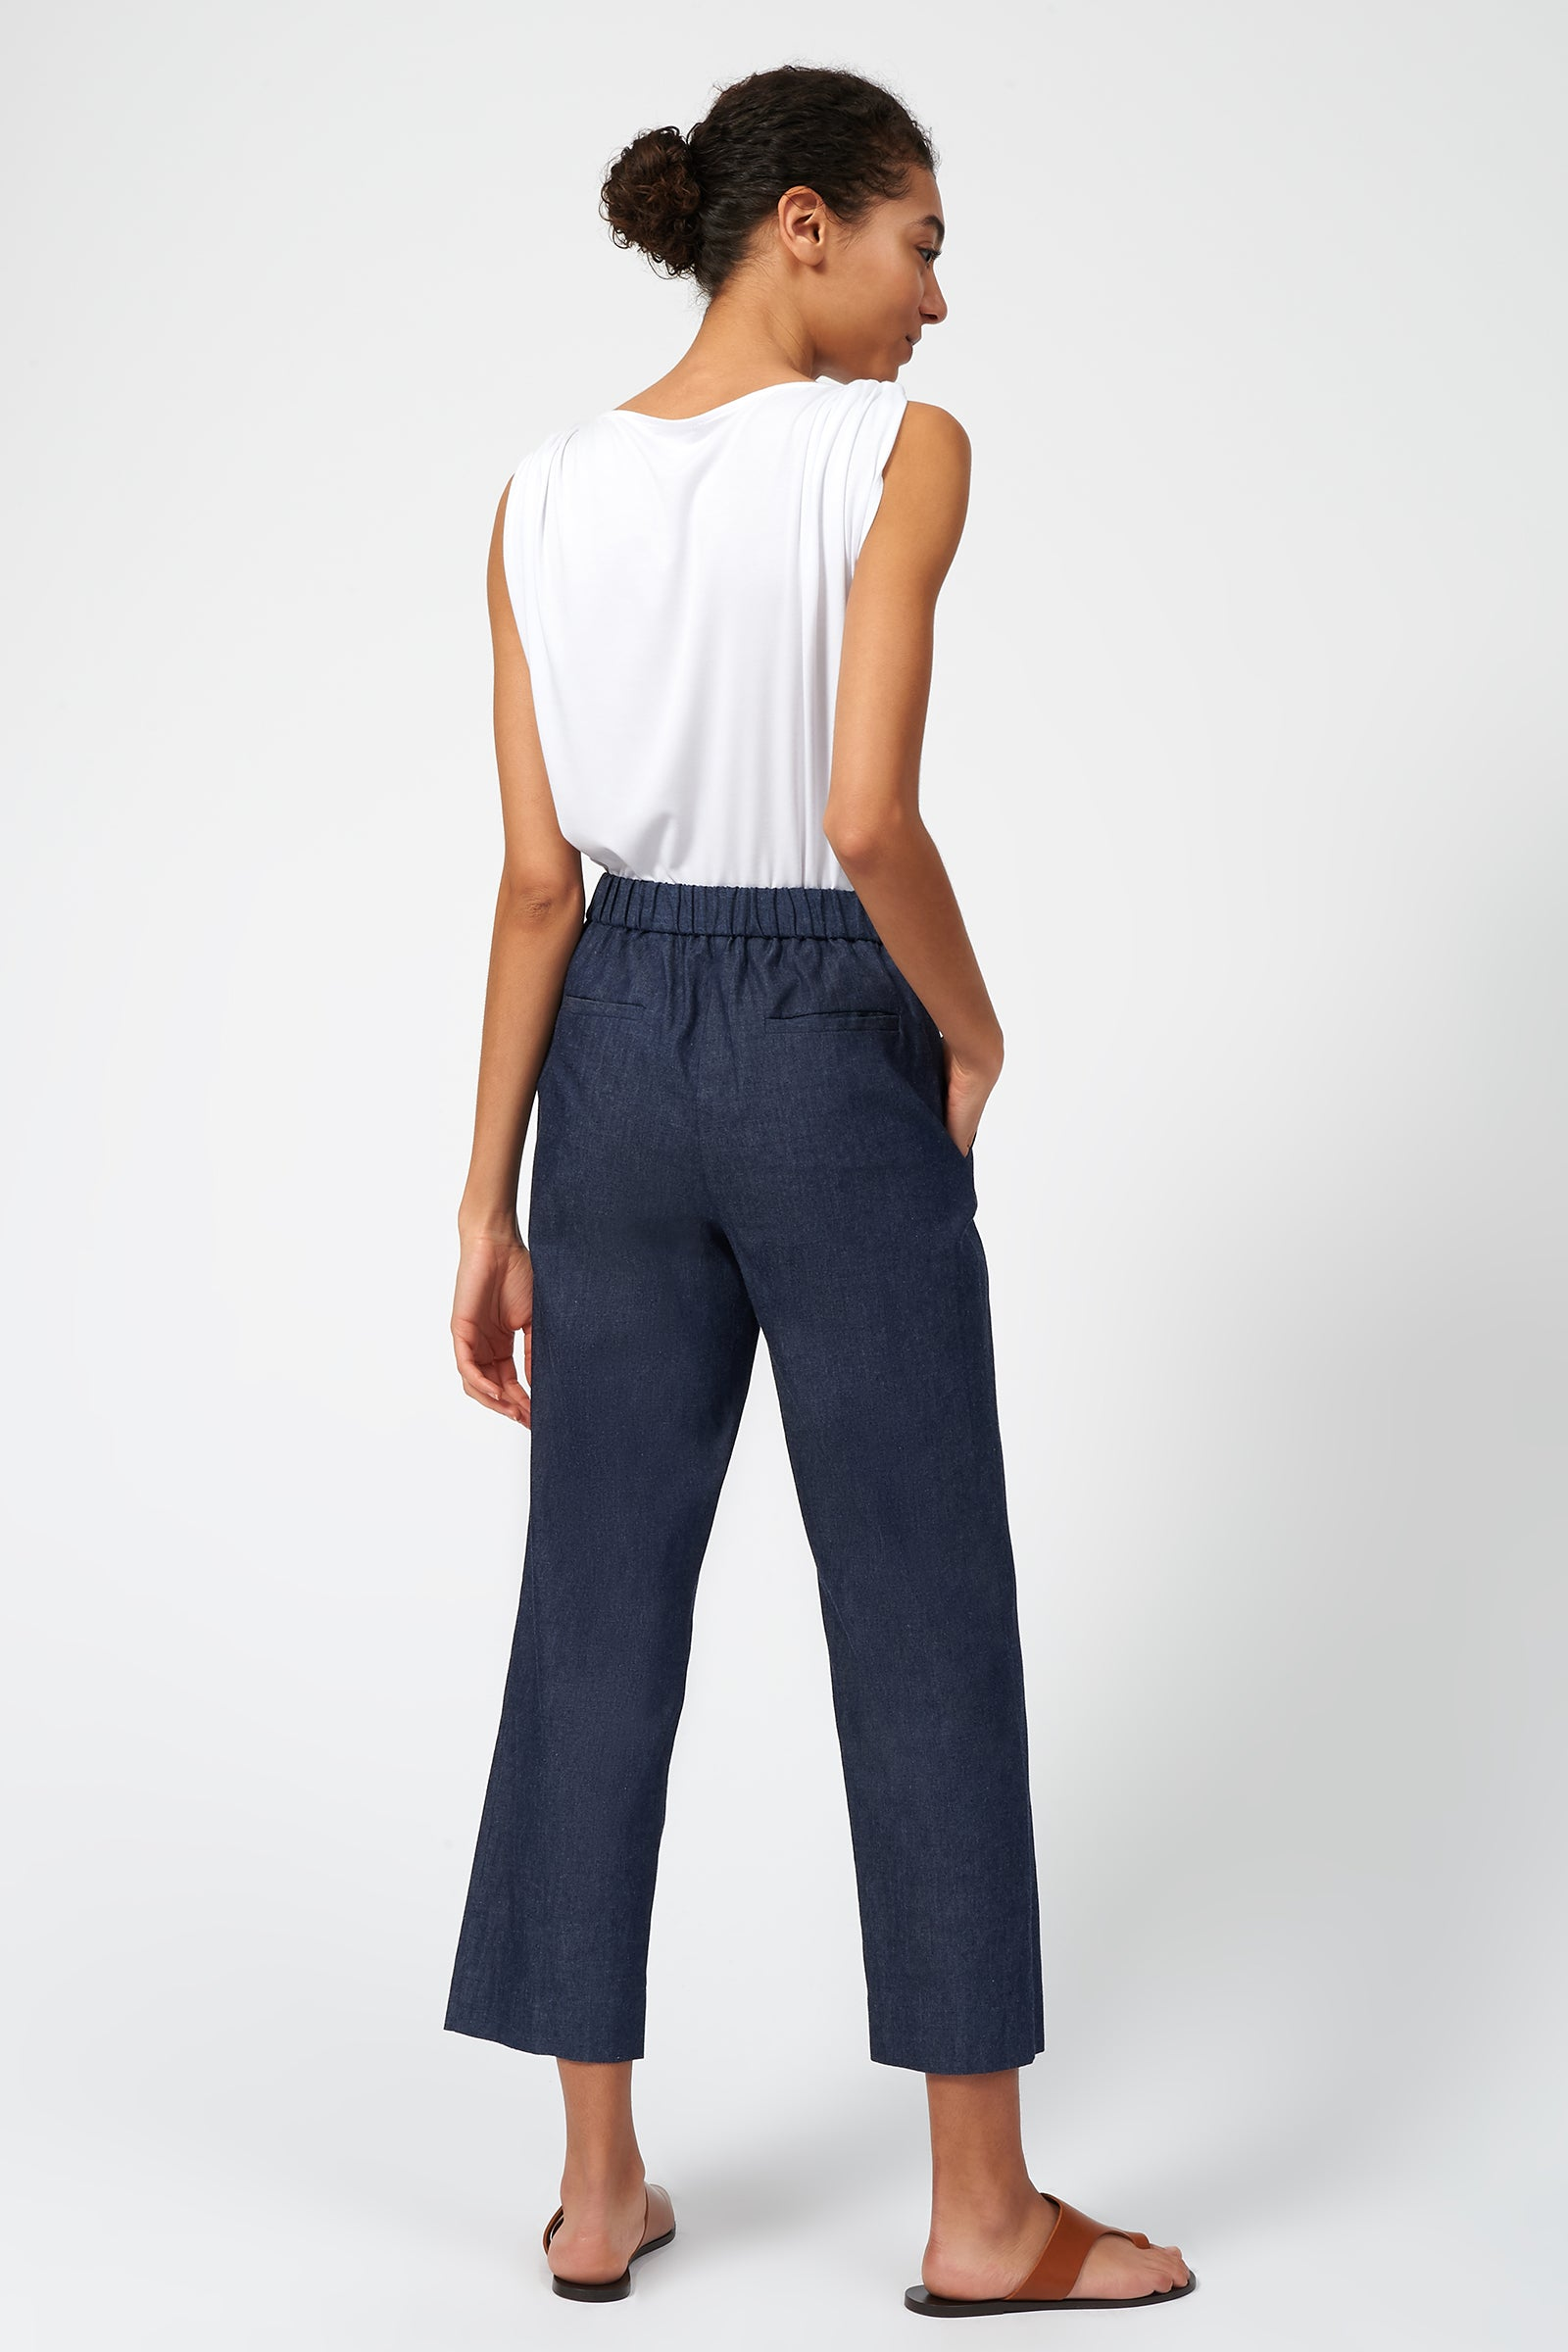 Kal Rieman Elastic Back Trouser in Denim on Model Full Front View